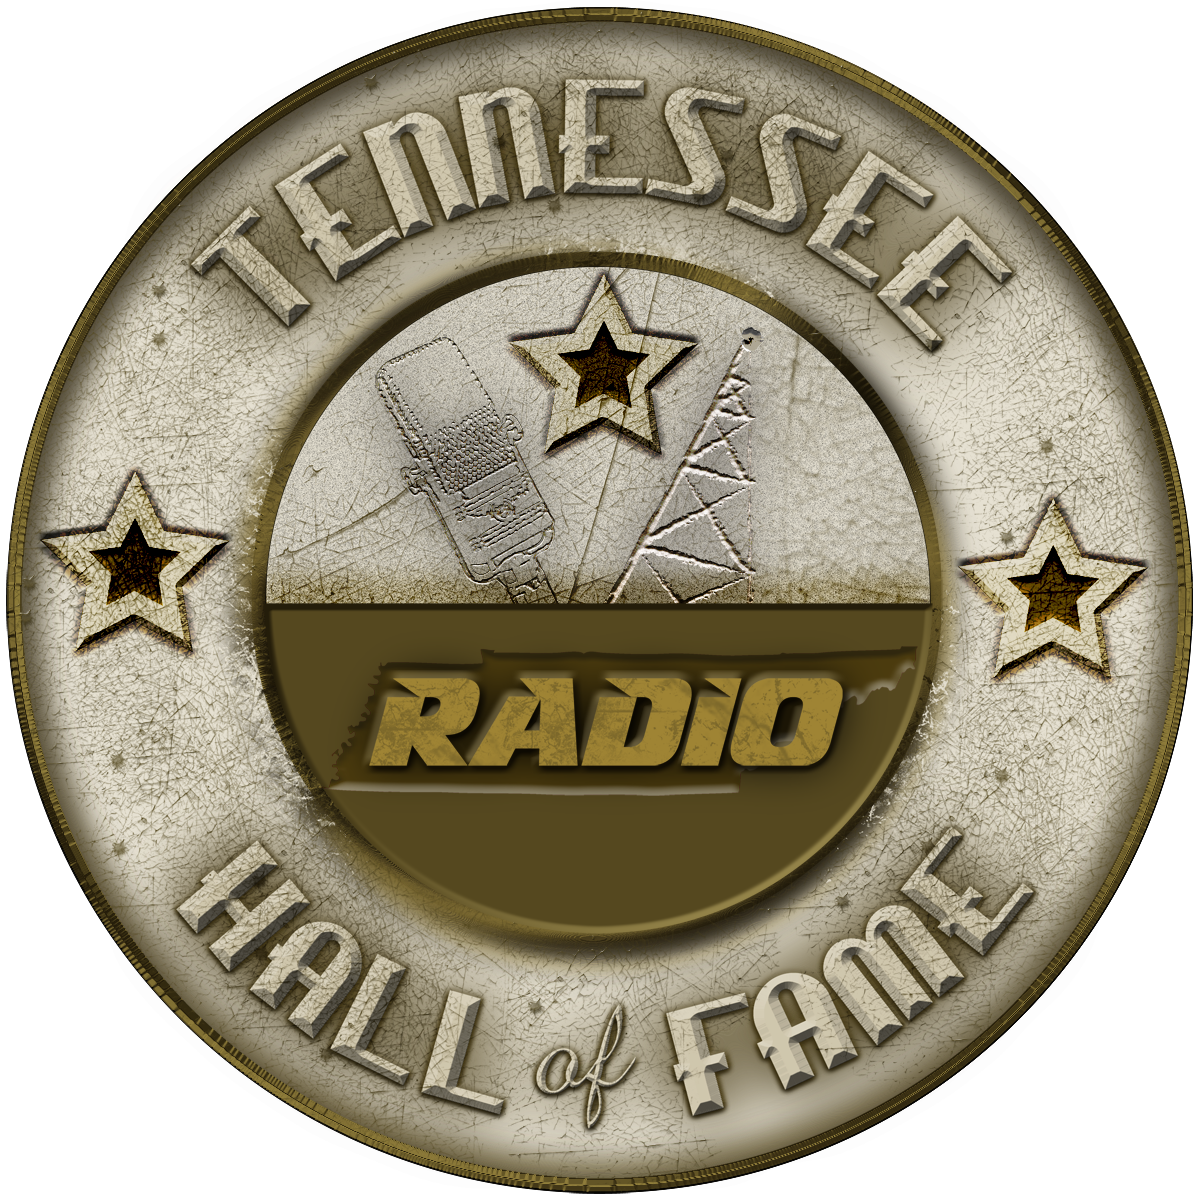 Tennessee Radio Hall of Fame Logo